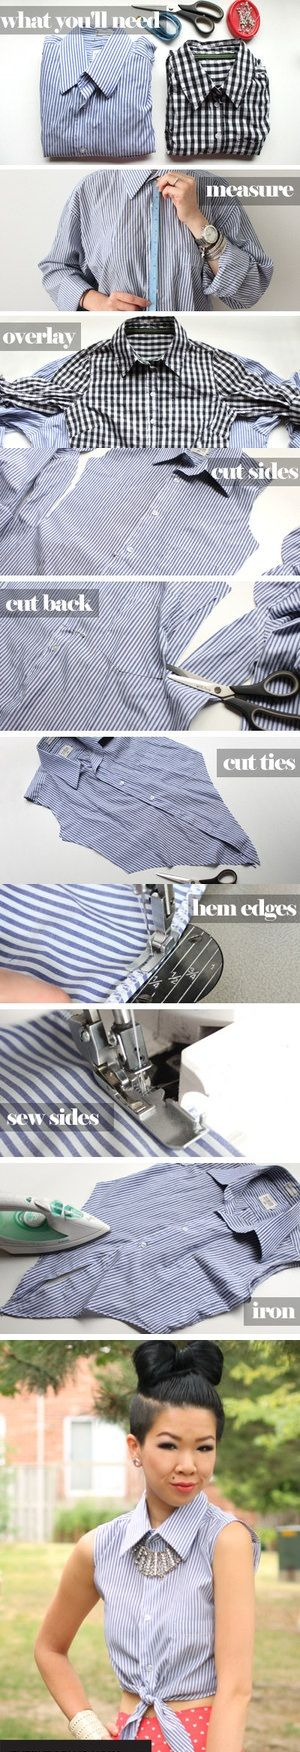 DIY Cropped Tie Top http://www.chictopia.com/photo/show/700353-DIY+Cropped+Tie+Top-sky-blue-cropped-blouse: